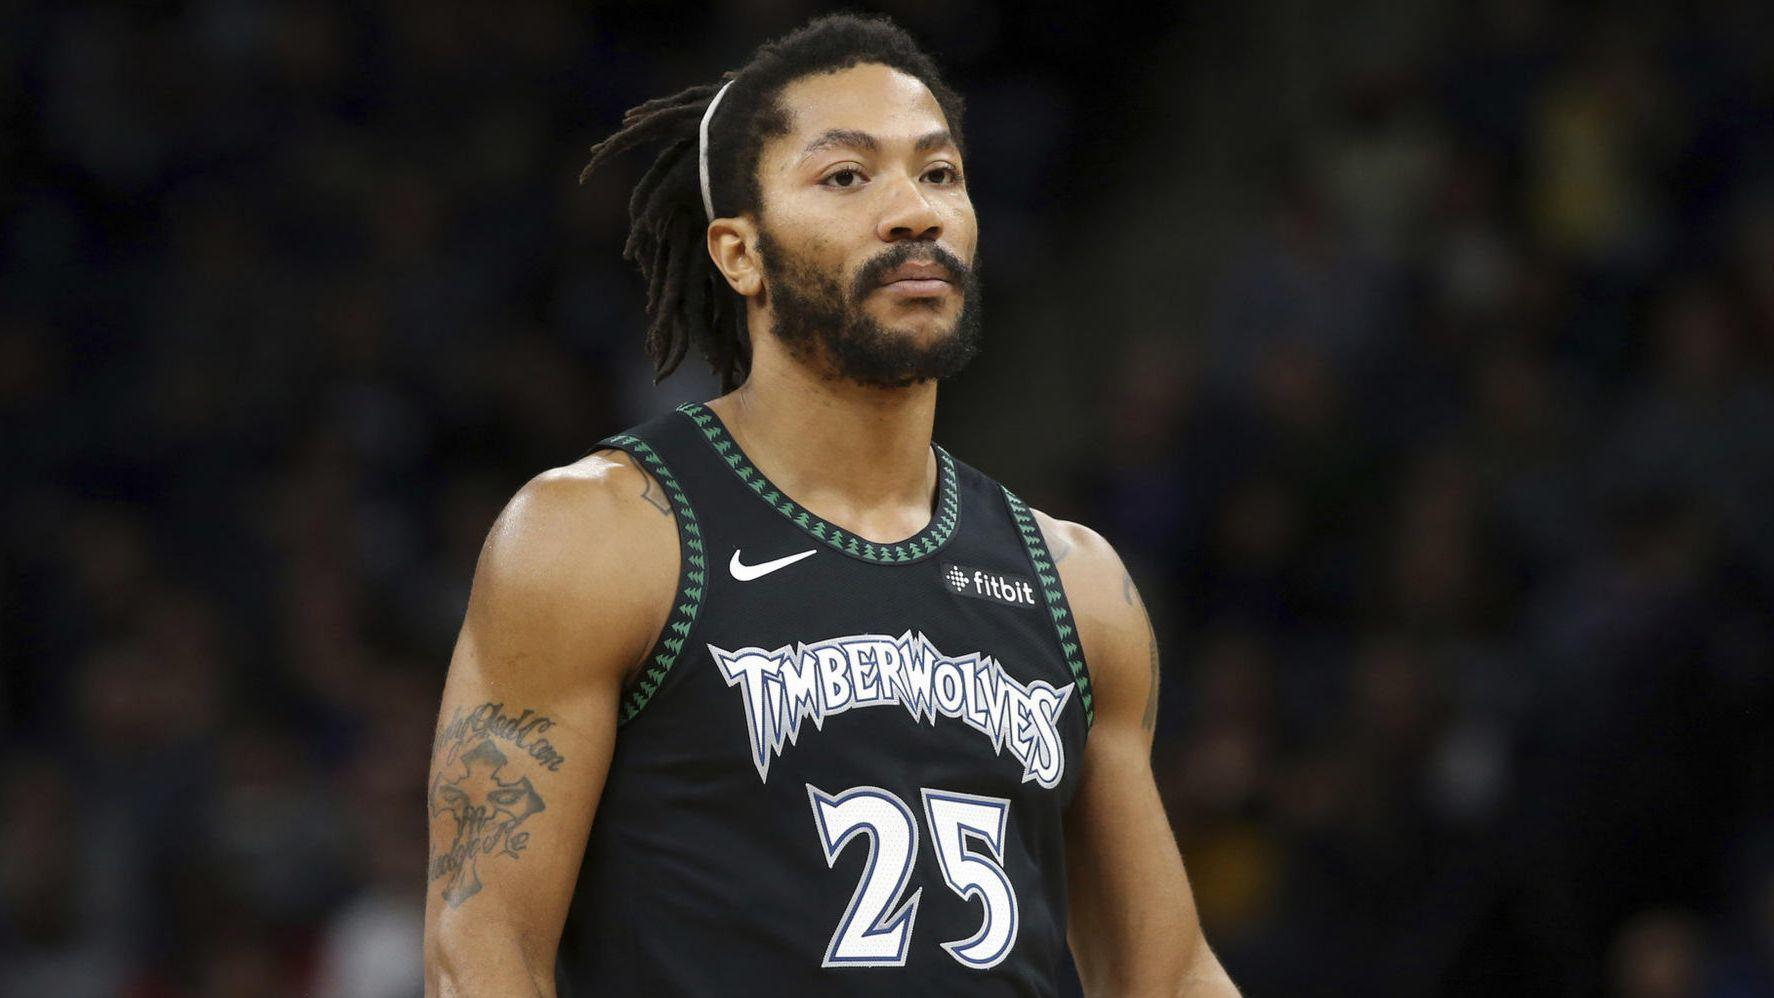 f1f7f7155070 Sixth Man of the Year contender Derrick Rose deserves praise for his  perseverance and play. K.C. Johnson K.C. JohnsonContact ReporterChicago  Tribune